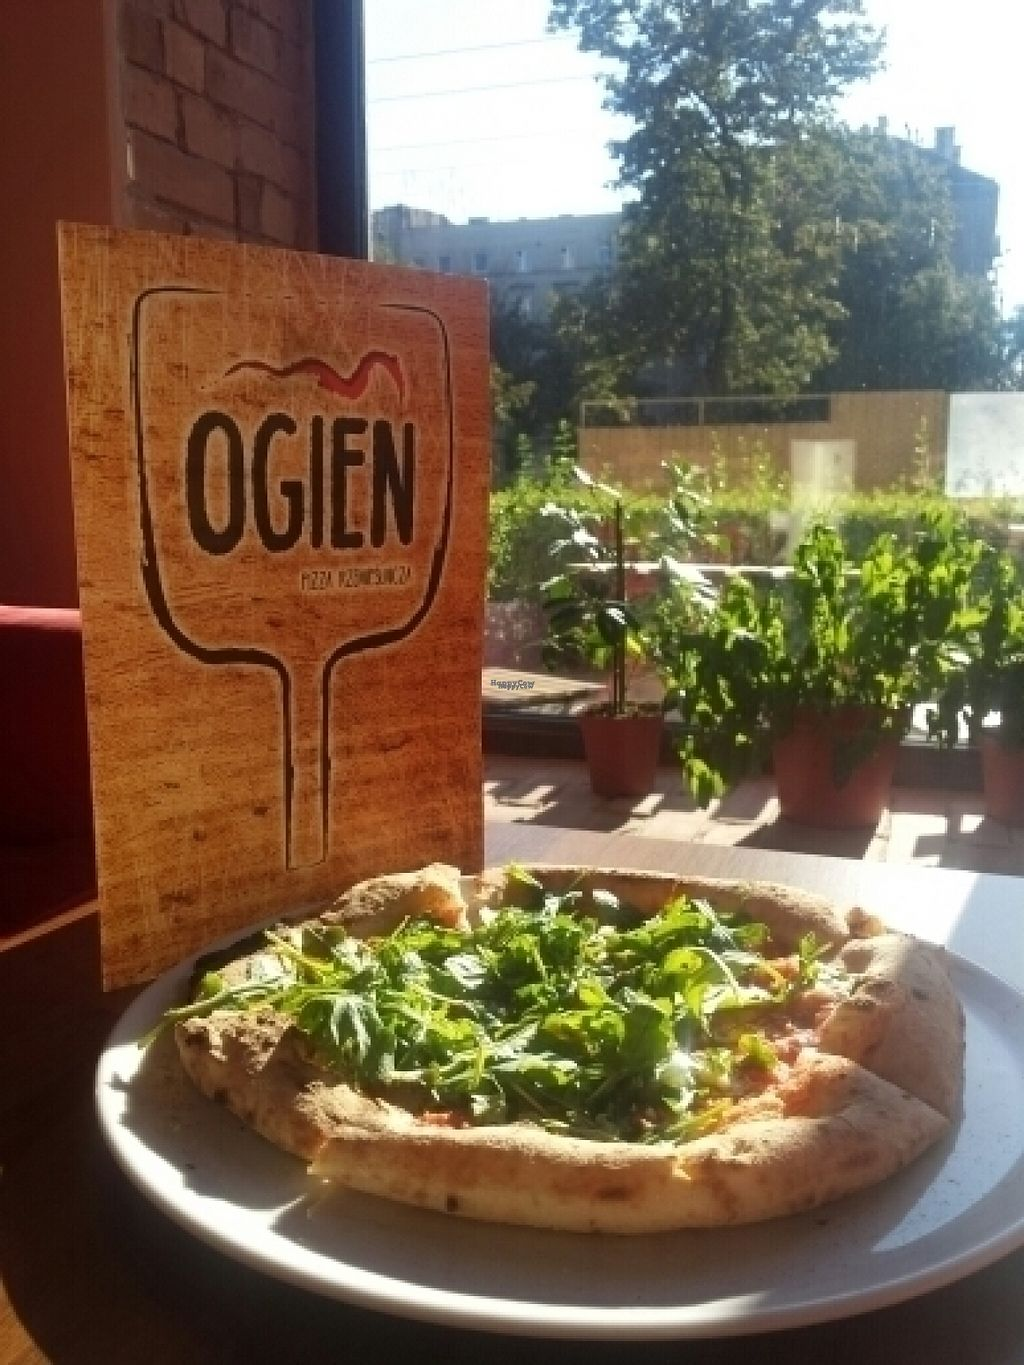 """Photo of Ogien  by <a href=""""/members/profile/RoslinnieJemy"""">RoslinnieJemy</a> <br/>pizza love <br/> August 12, 2016  - <a href='/contact/abuse/image/78493/167861'>Report</a>"""